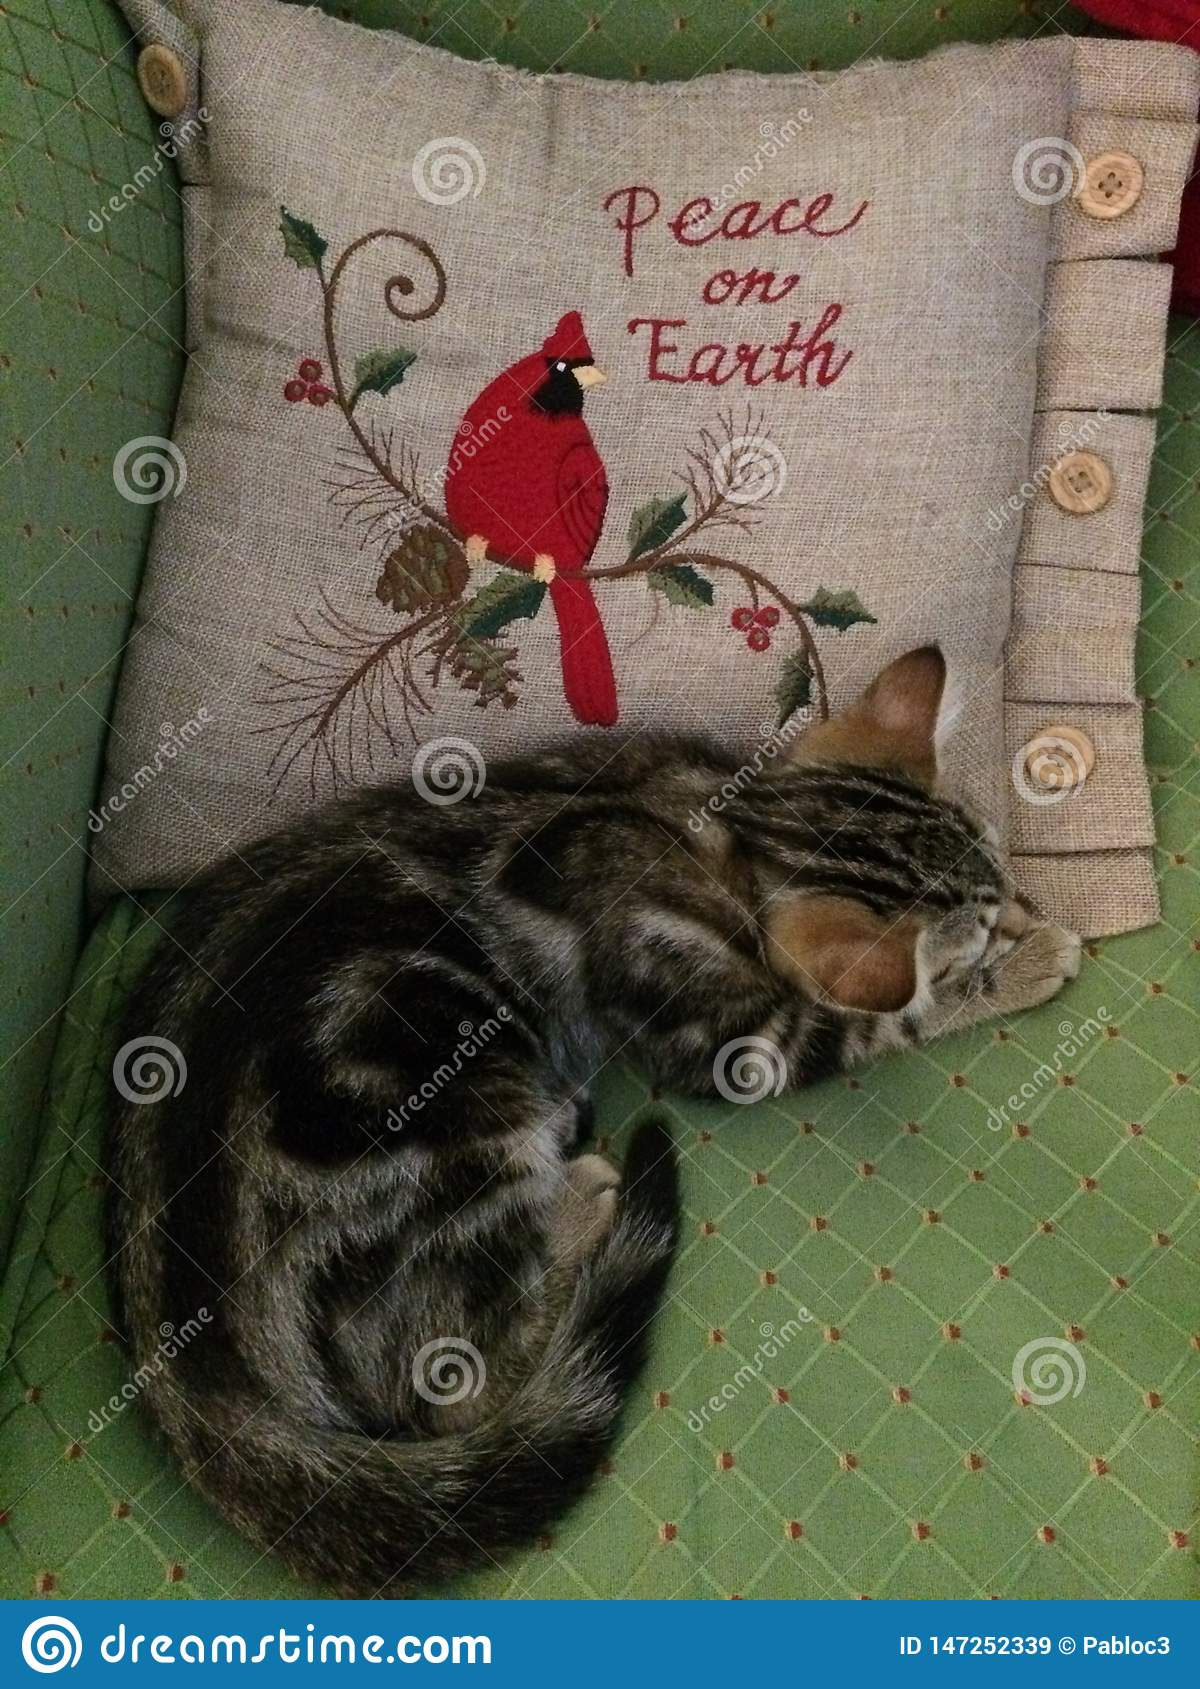 Addie Cat - Peace on Earth